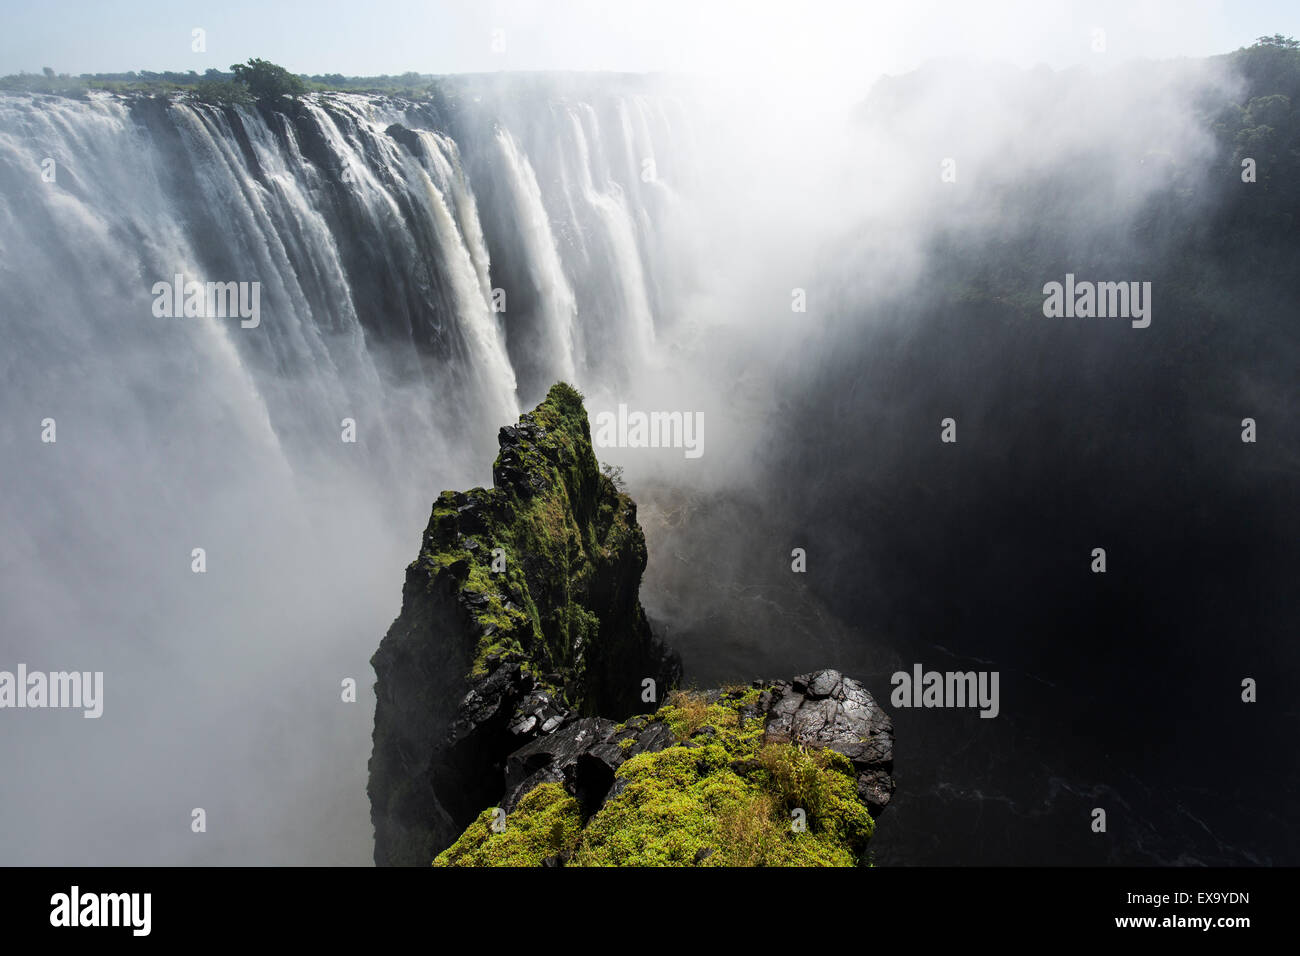 Africa, Zimbabwe, Victoria Falls National Park, Zambezi River as it flows over Victoria Falls - Stock Image